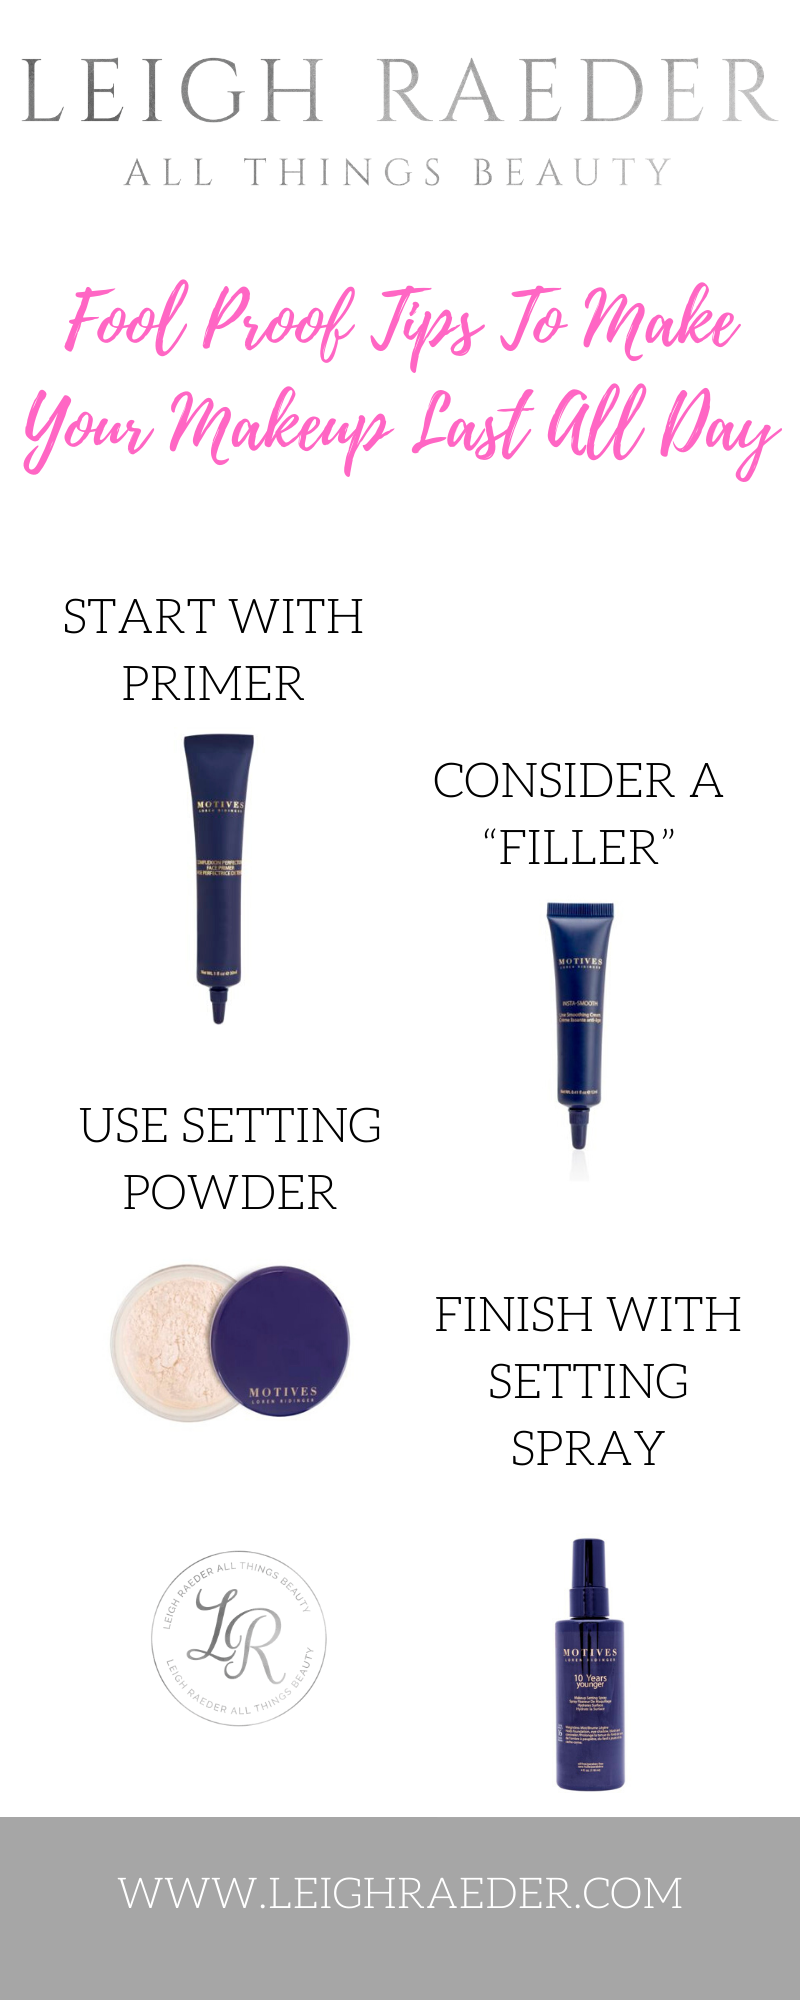 Fool Proof Tips to Make Your Makeup Last All Day in 2020